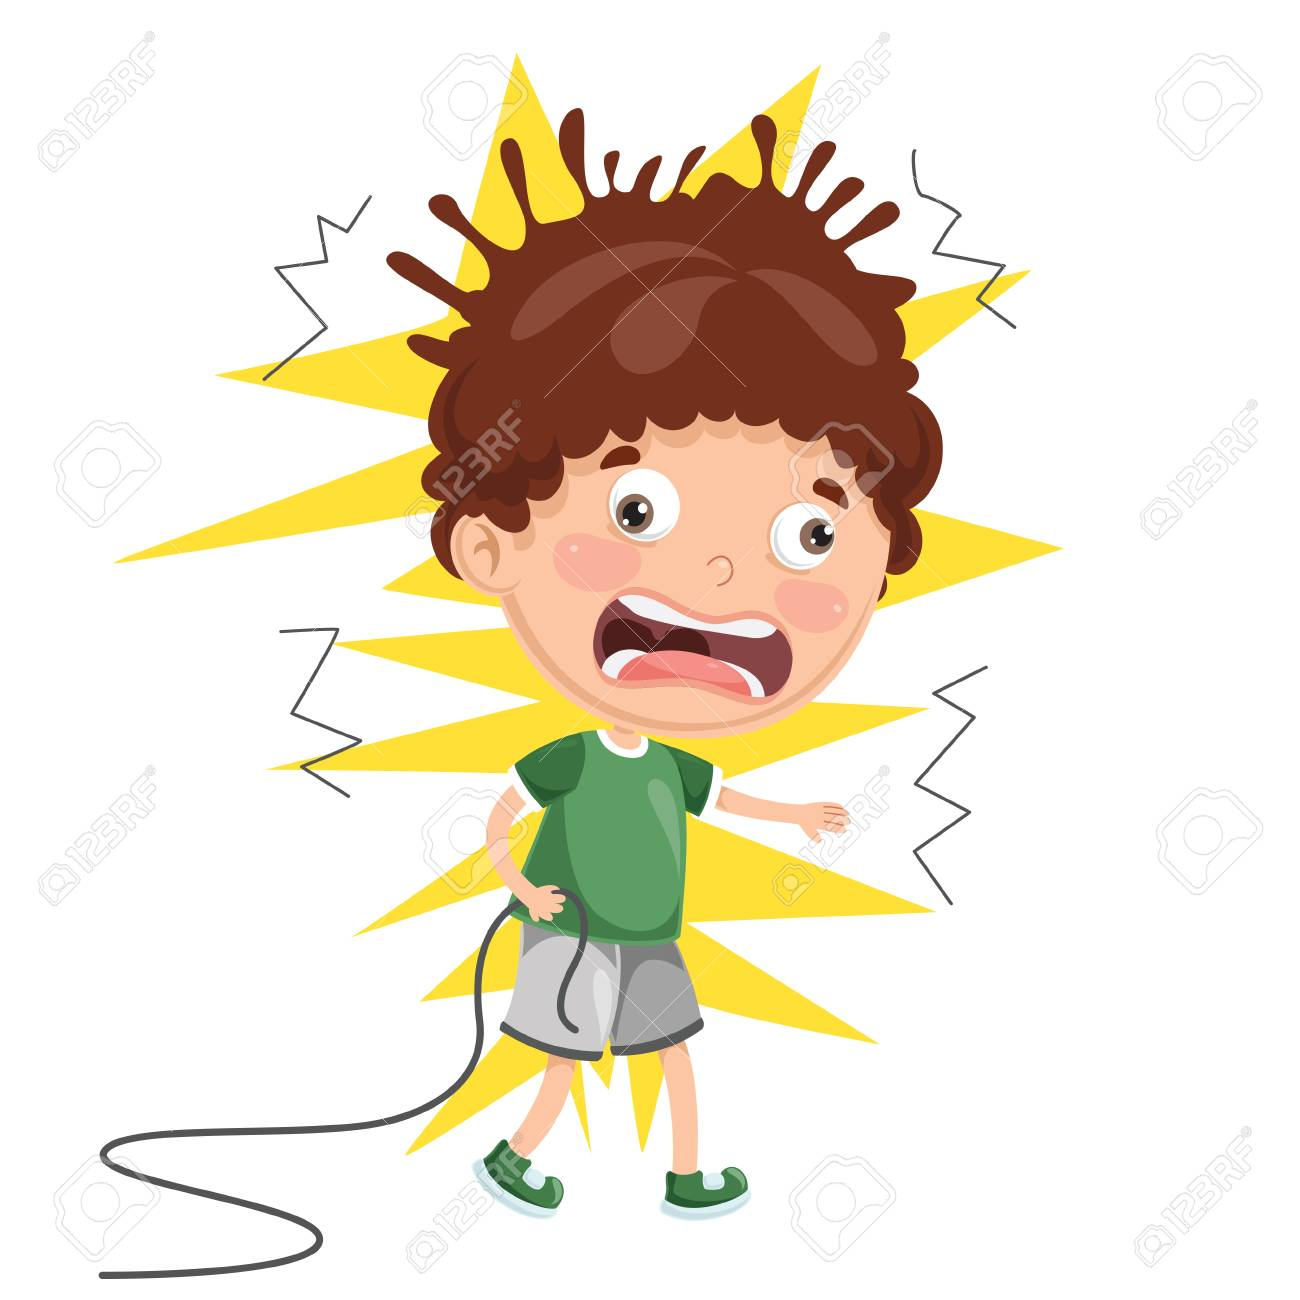 Vector Illustration Of Kid With Electric Shock.